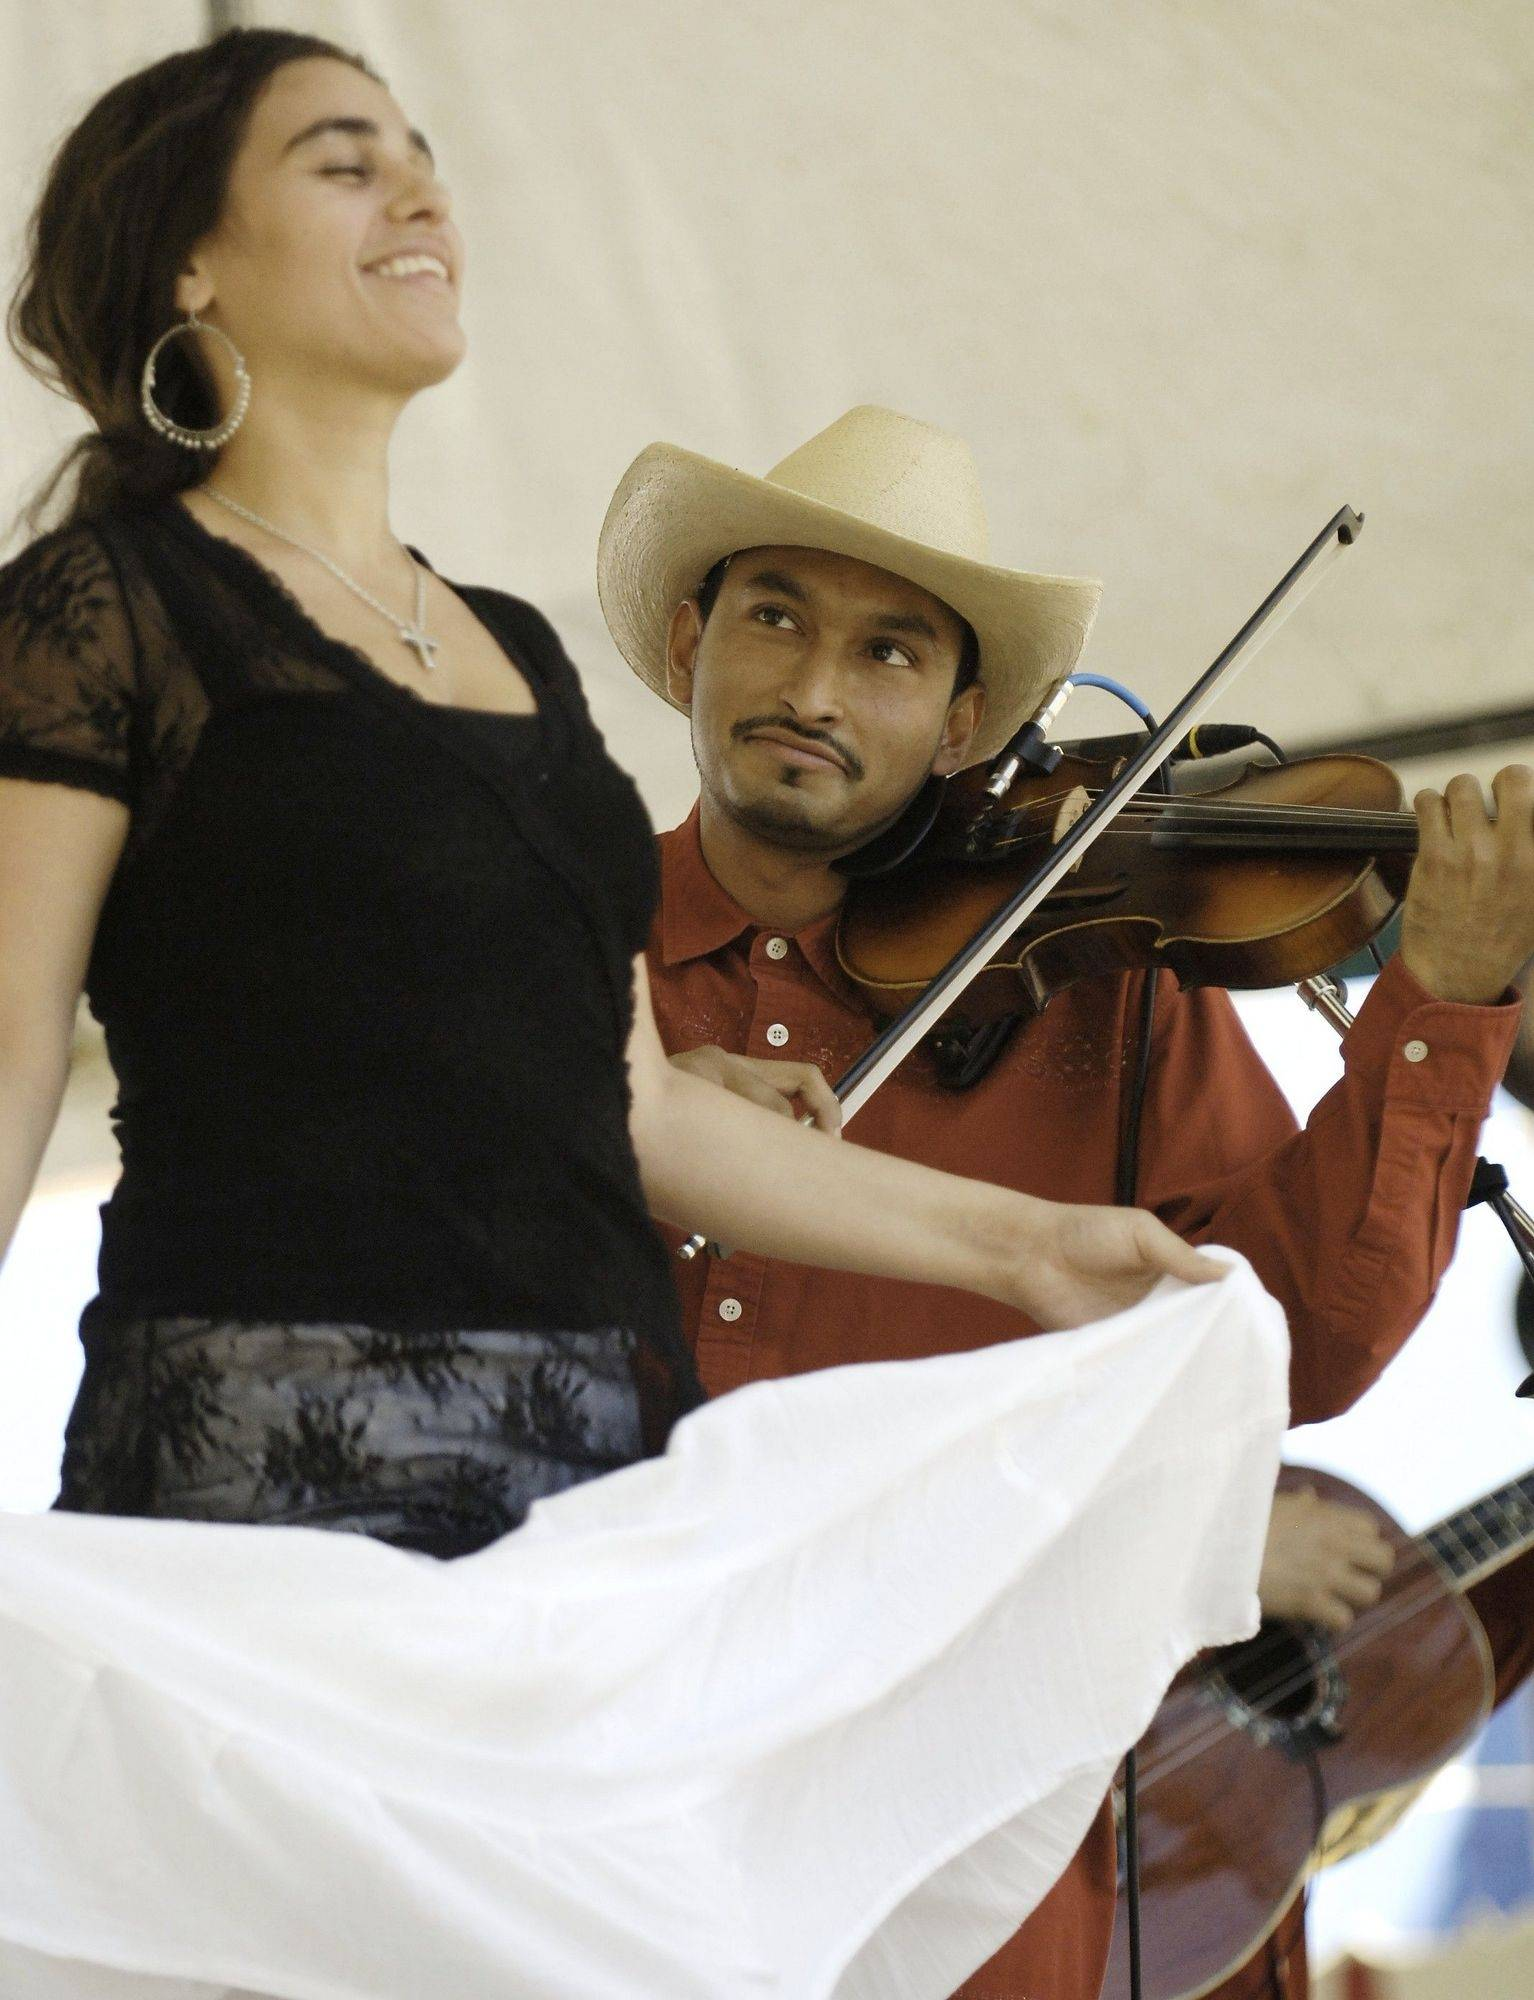 Fiestas Patrias expands scope of Aurora Hispanic Heritage celebration